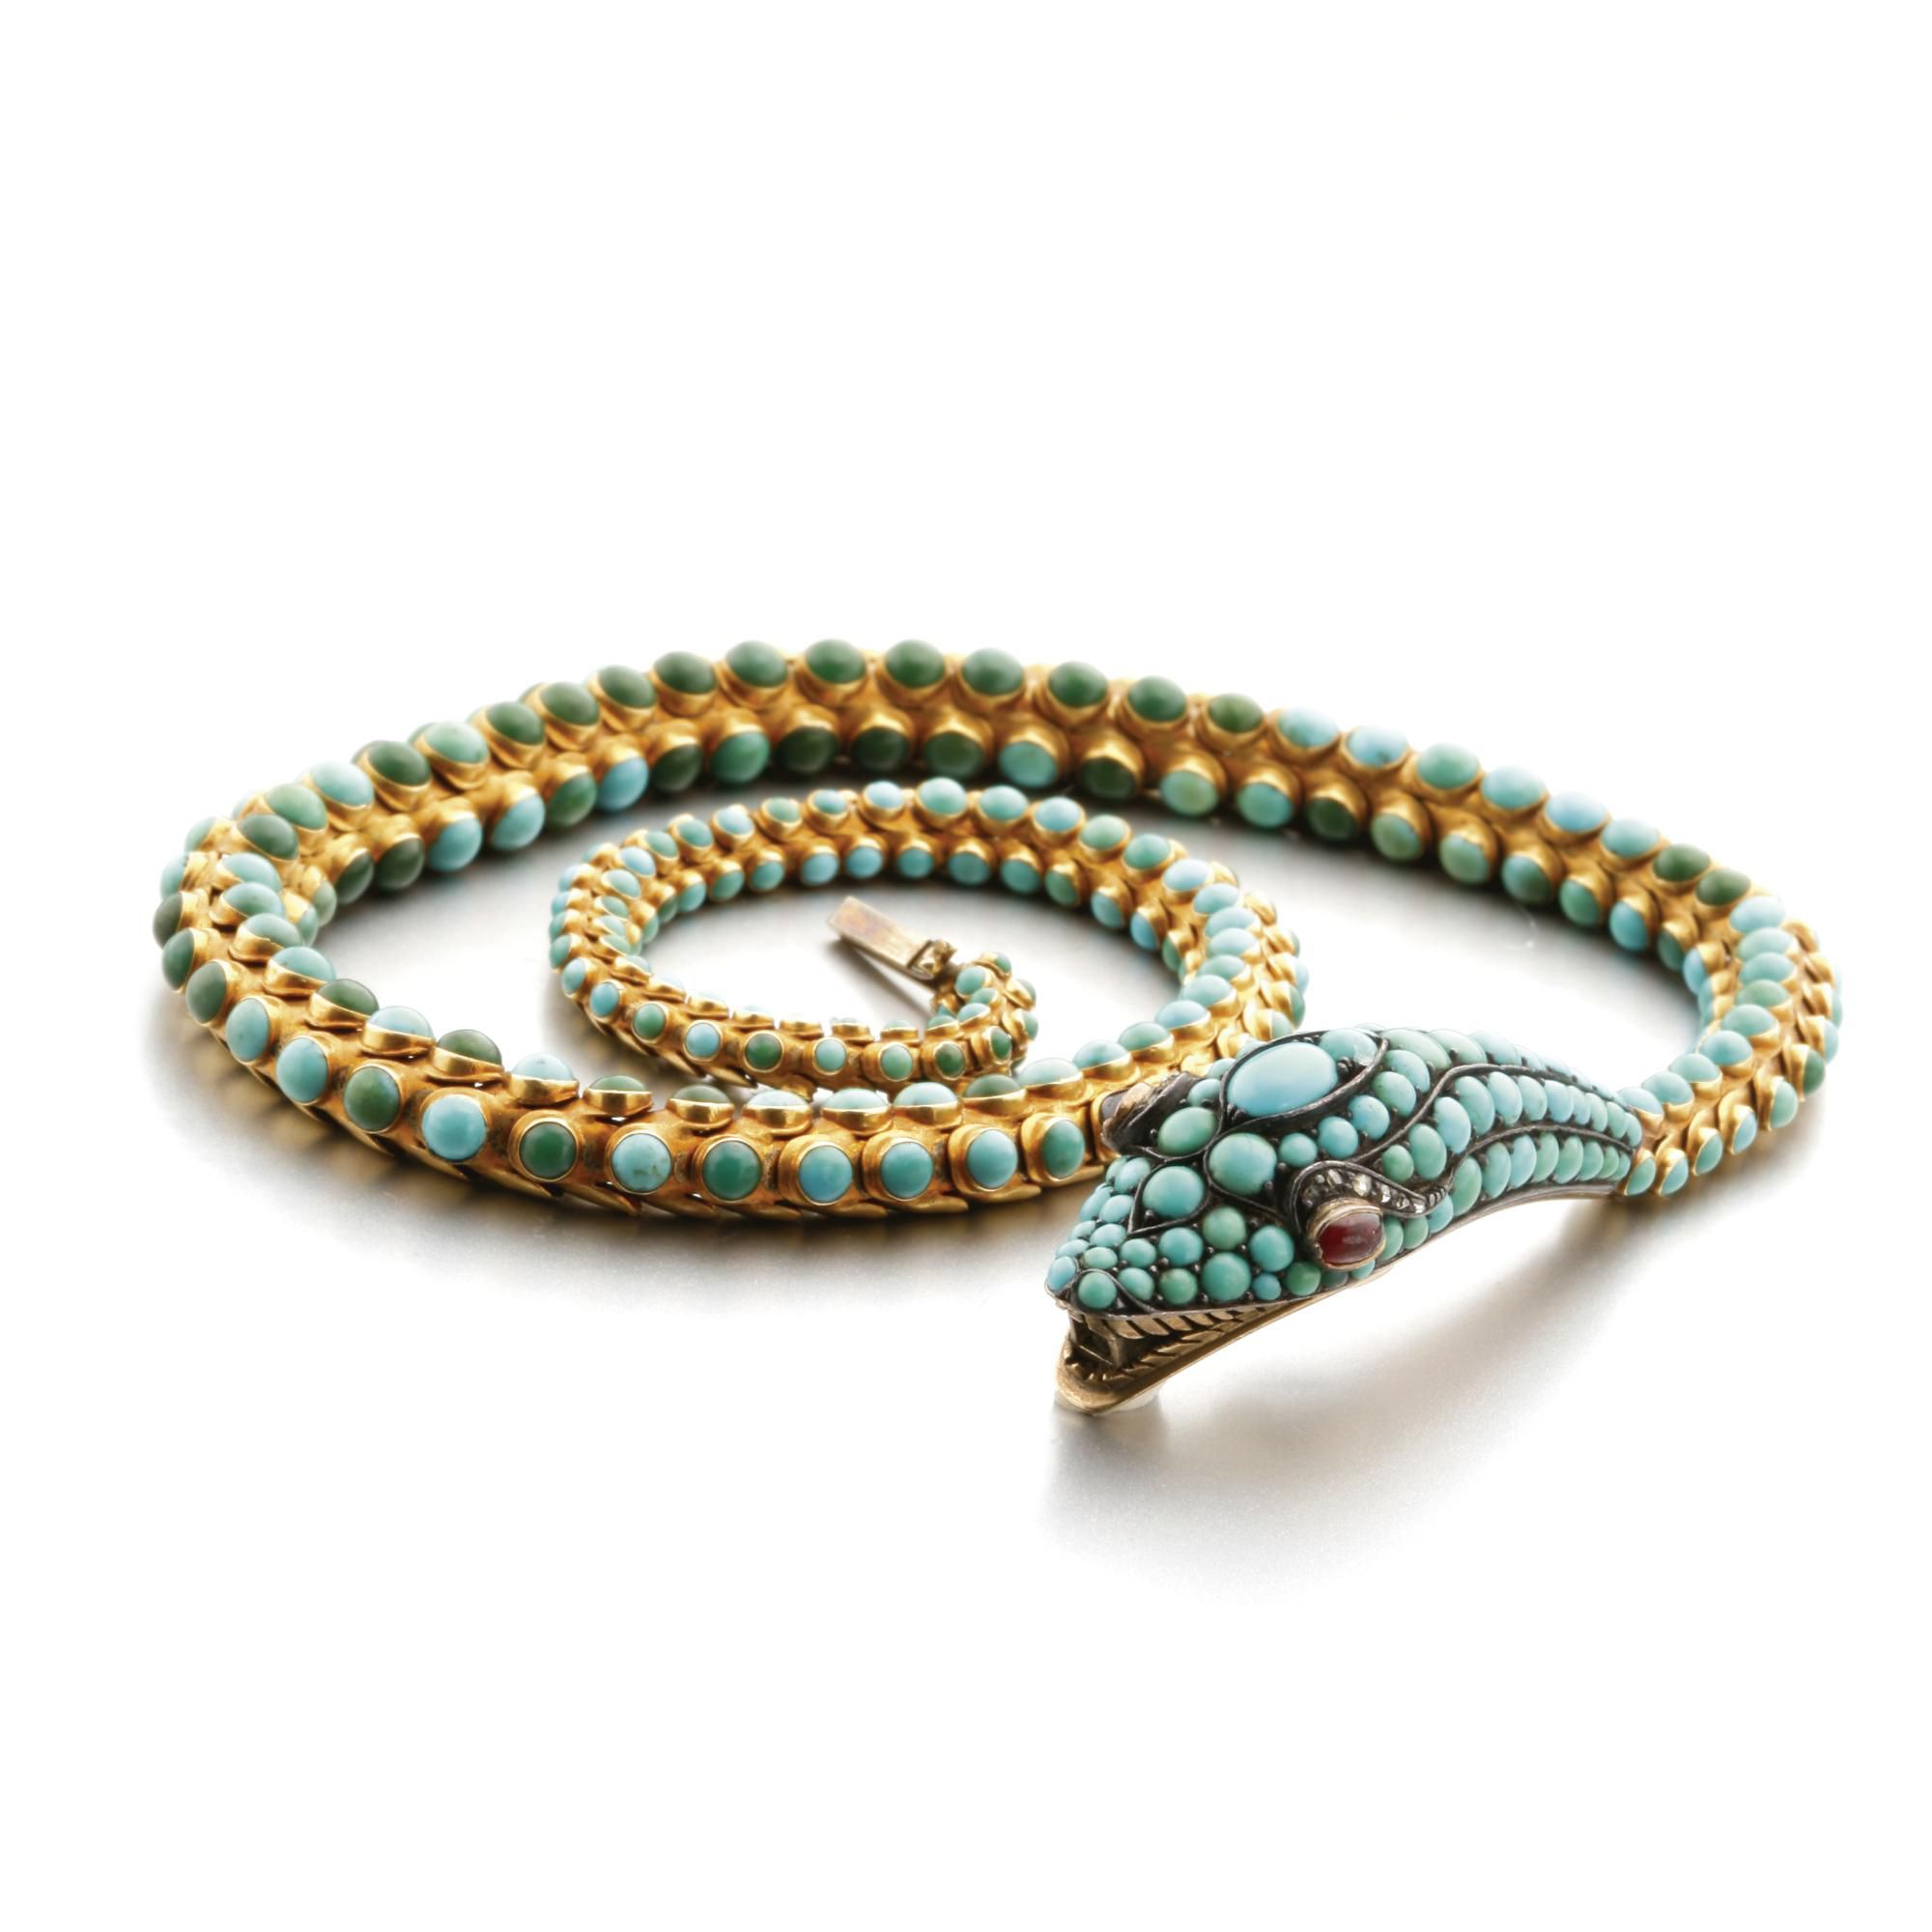 GOLD, SILVER AND TURQUOISE SNAKE NECKLACE, MID 19TH CENTURY The serpent with flexible, tapering body, studded with turquoise cabochons, the eyes set with oval red stone cabochons beneath scrolls of rose-cut diamonds, a glazed compartment under chin, mounted in gold and silver.